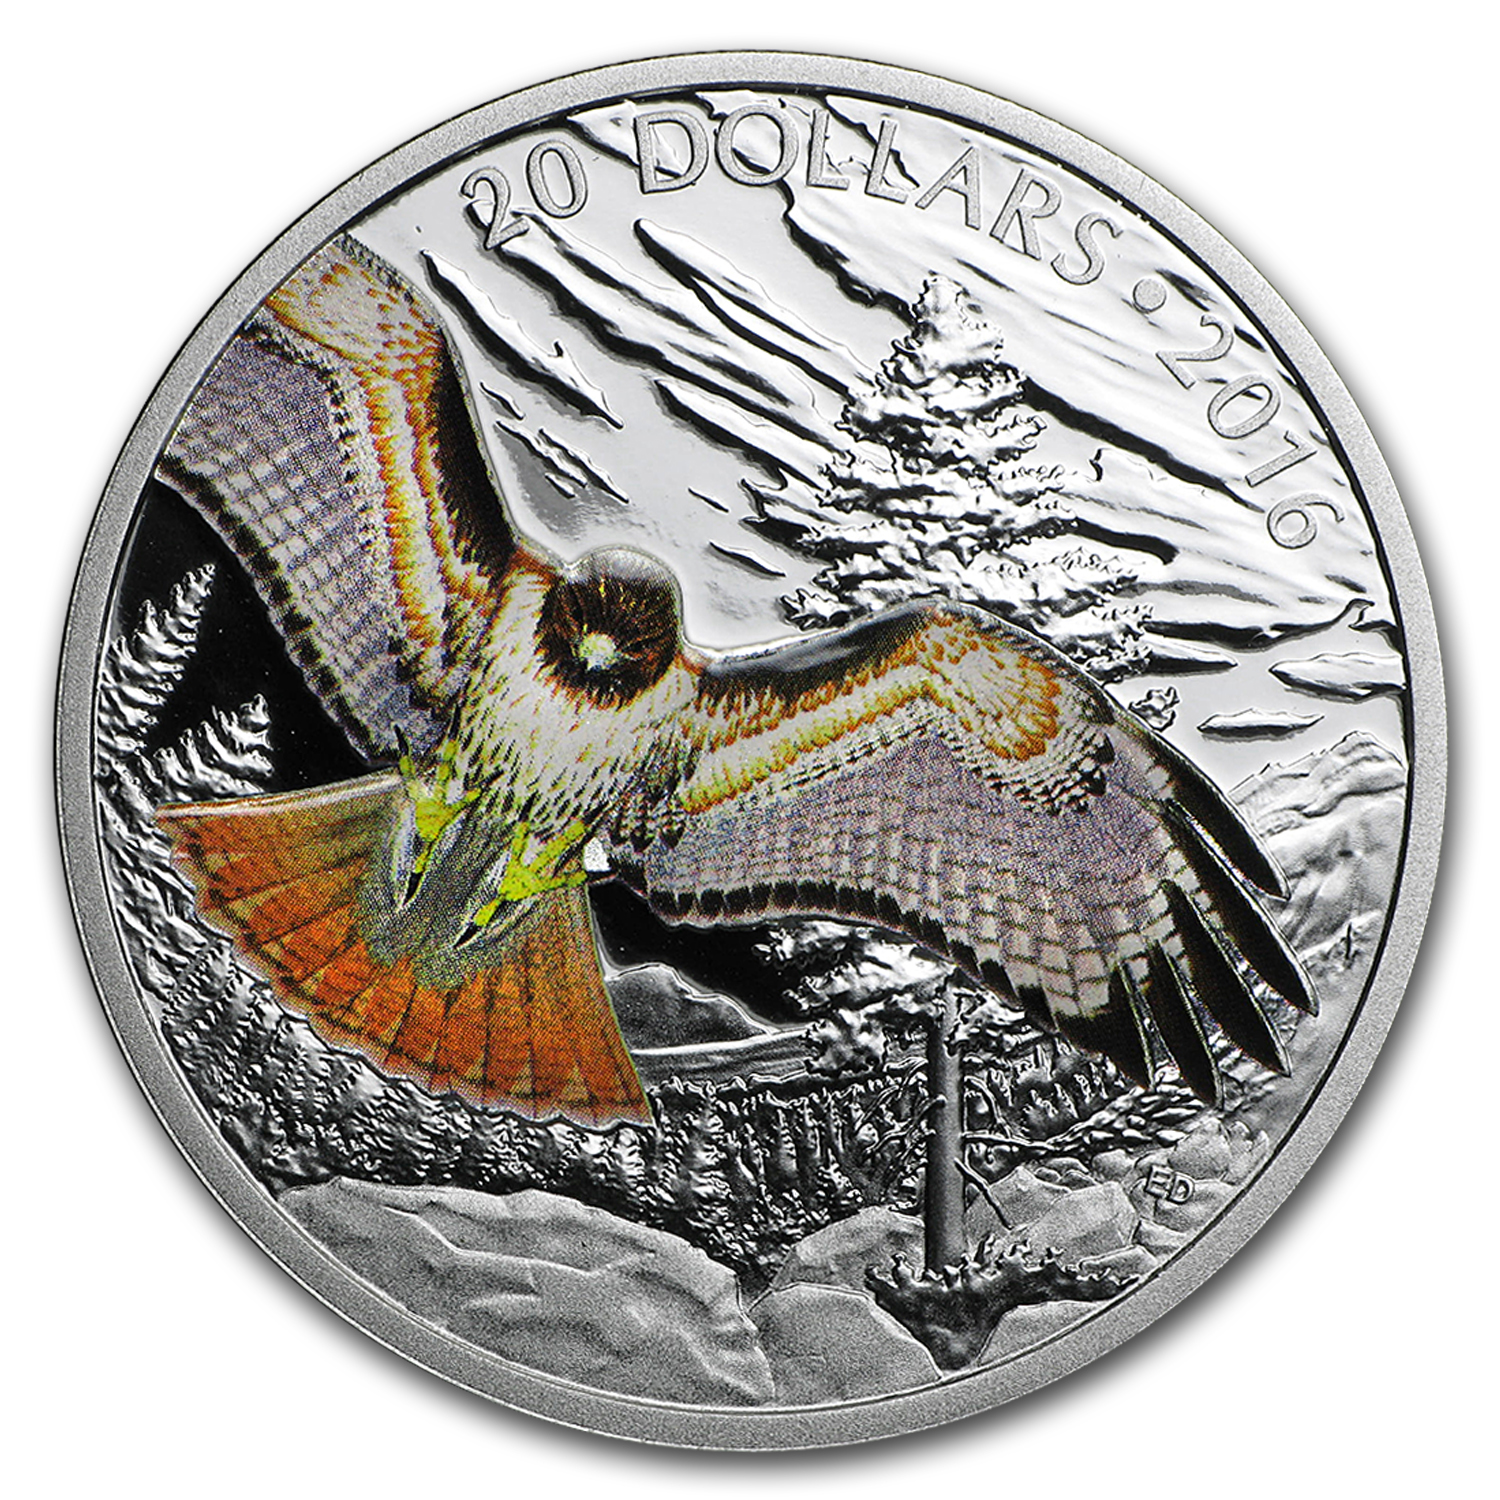 2016 Canada Proof 1 oz Silver $20 Red Tailed Hawk